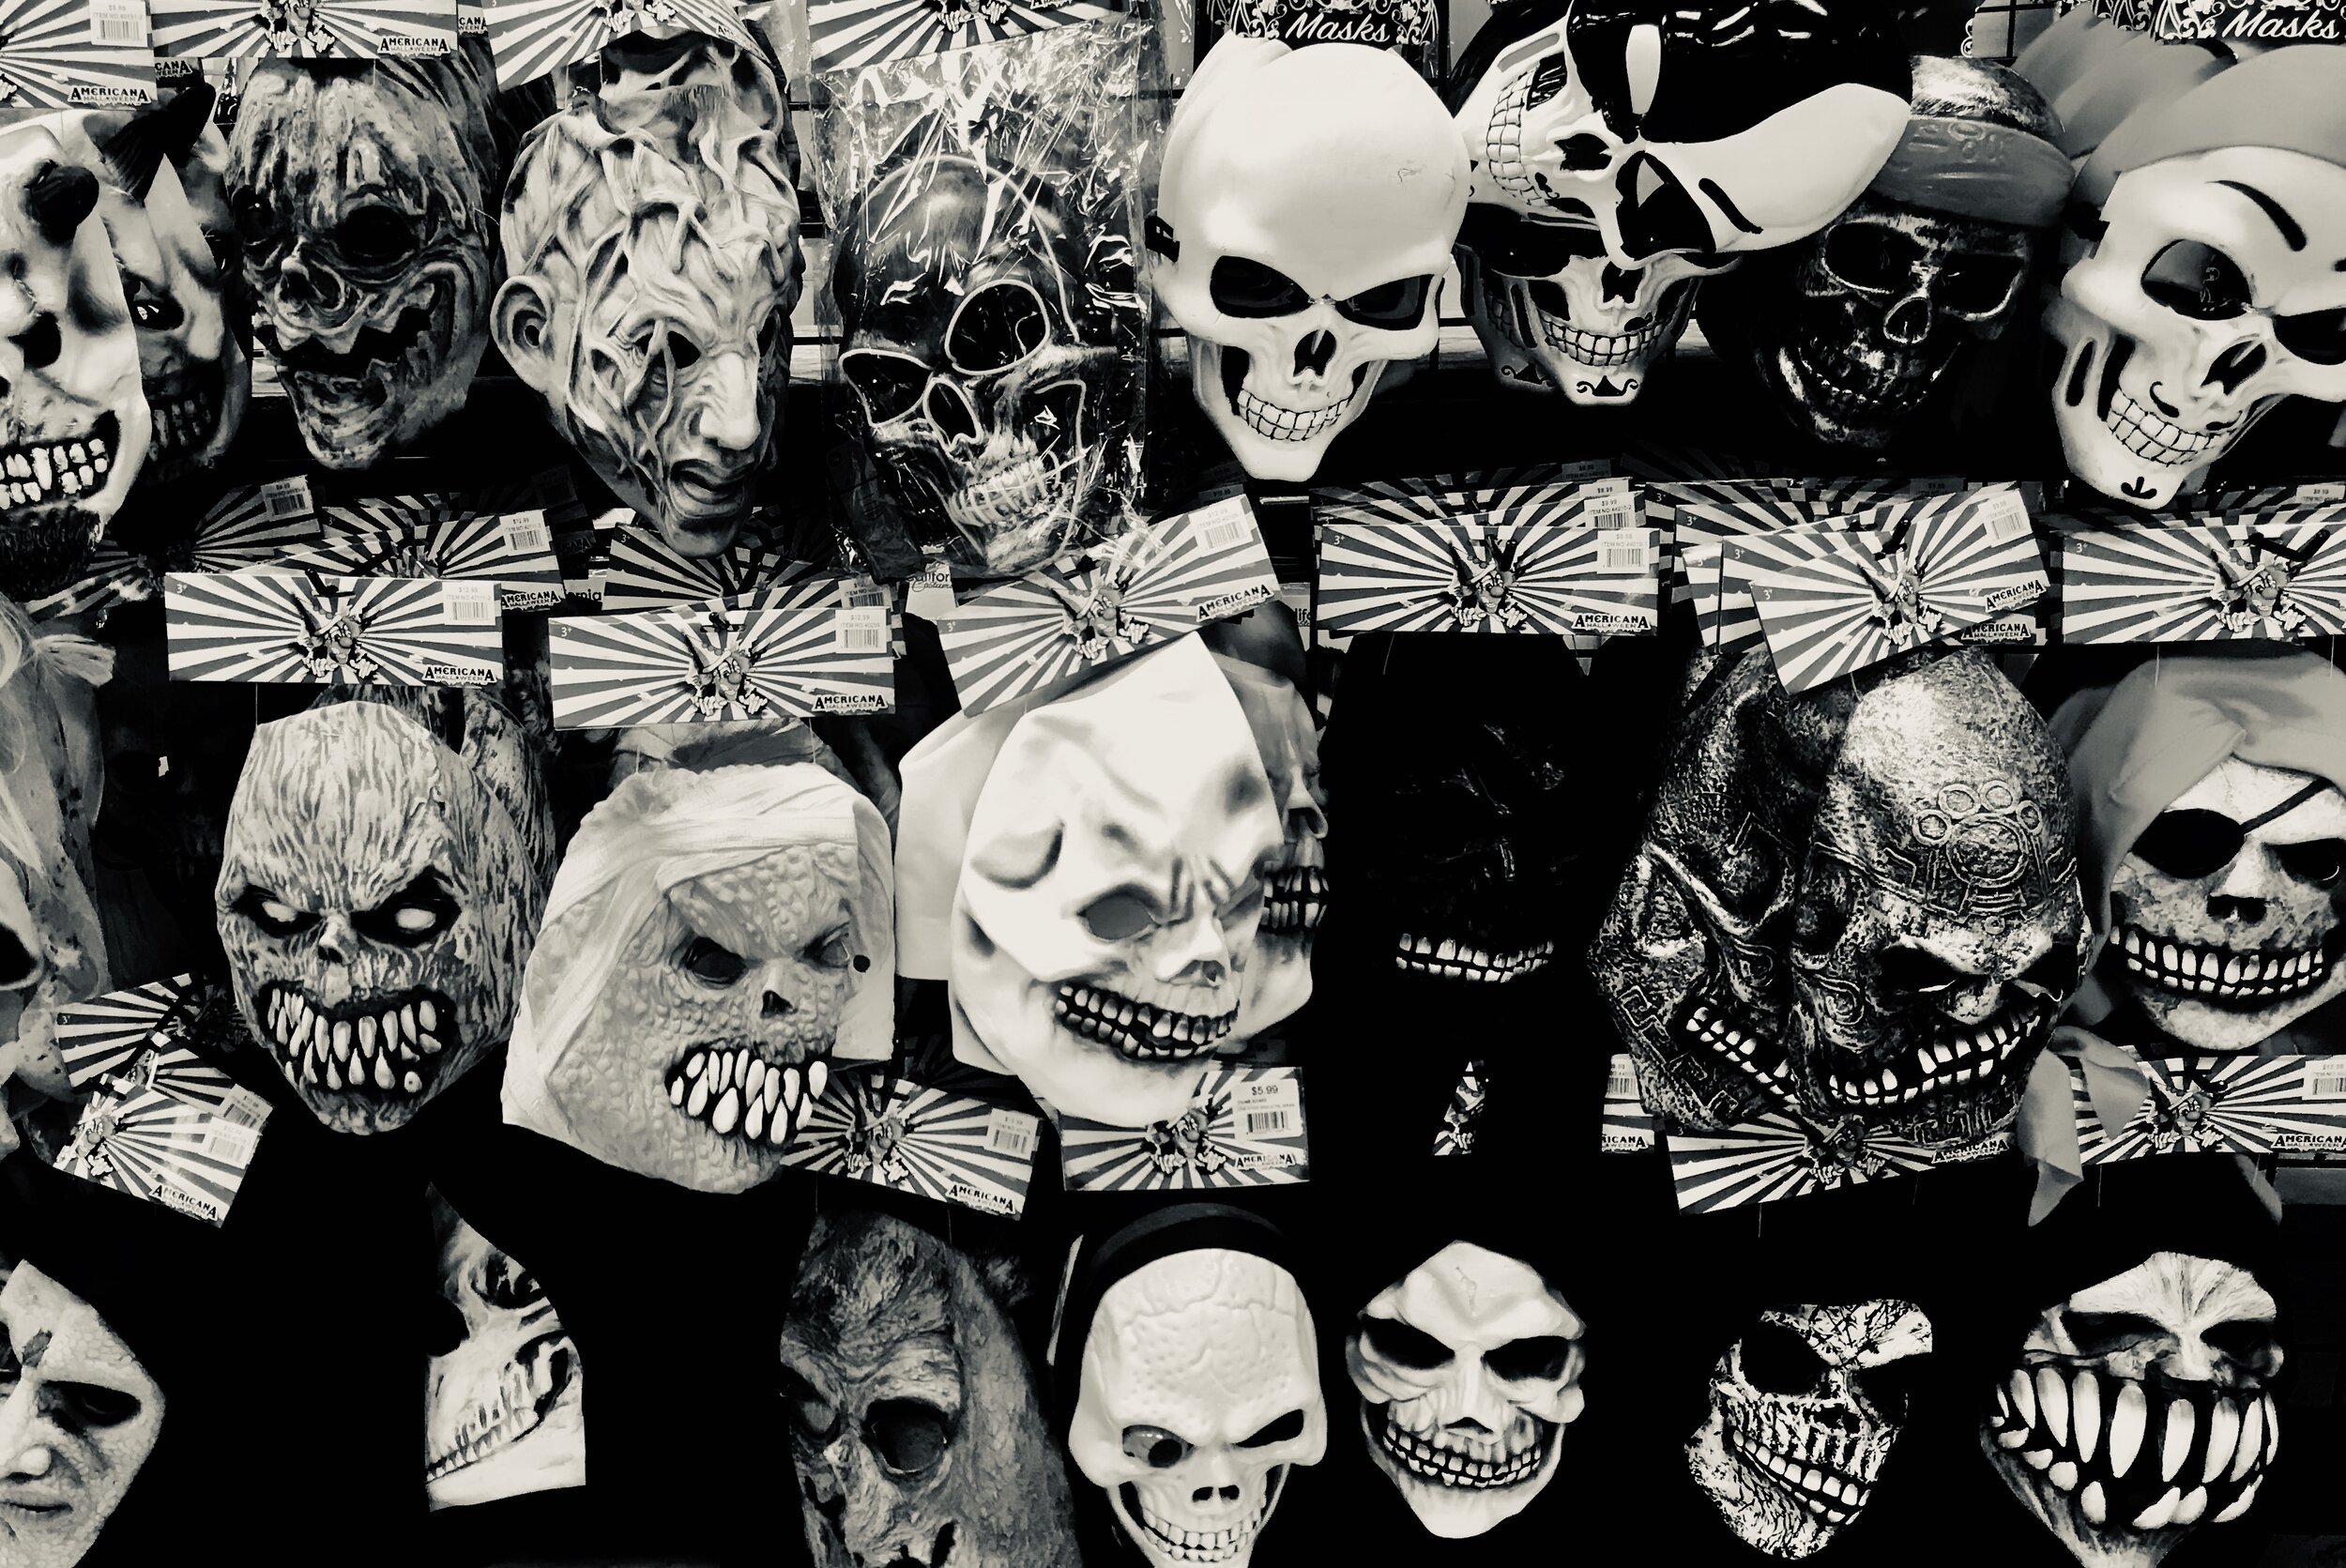 Halloween Post: Dark Thoughts - Thinking about bad thoughts of all kinds